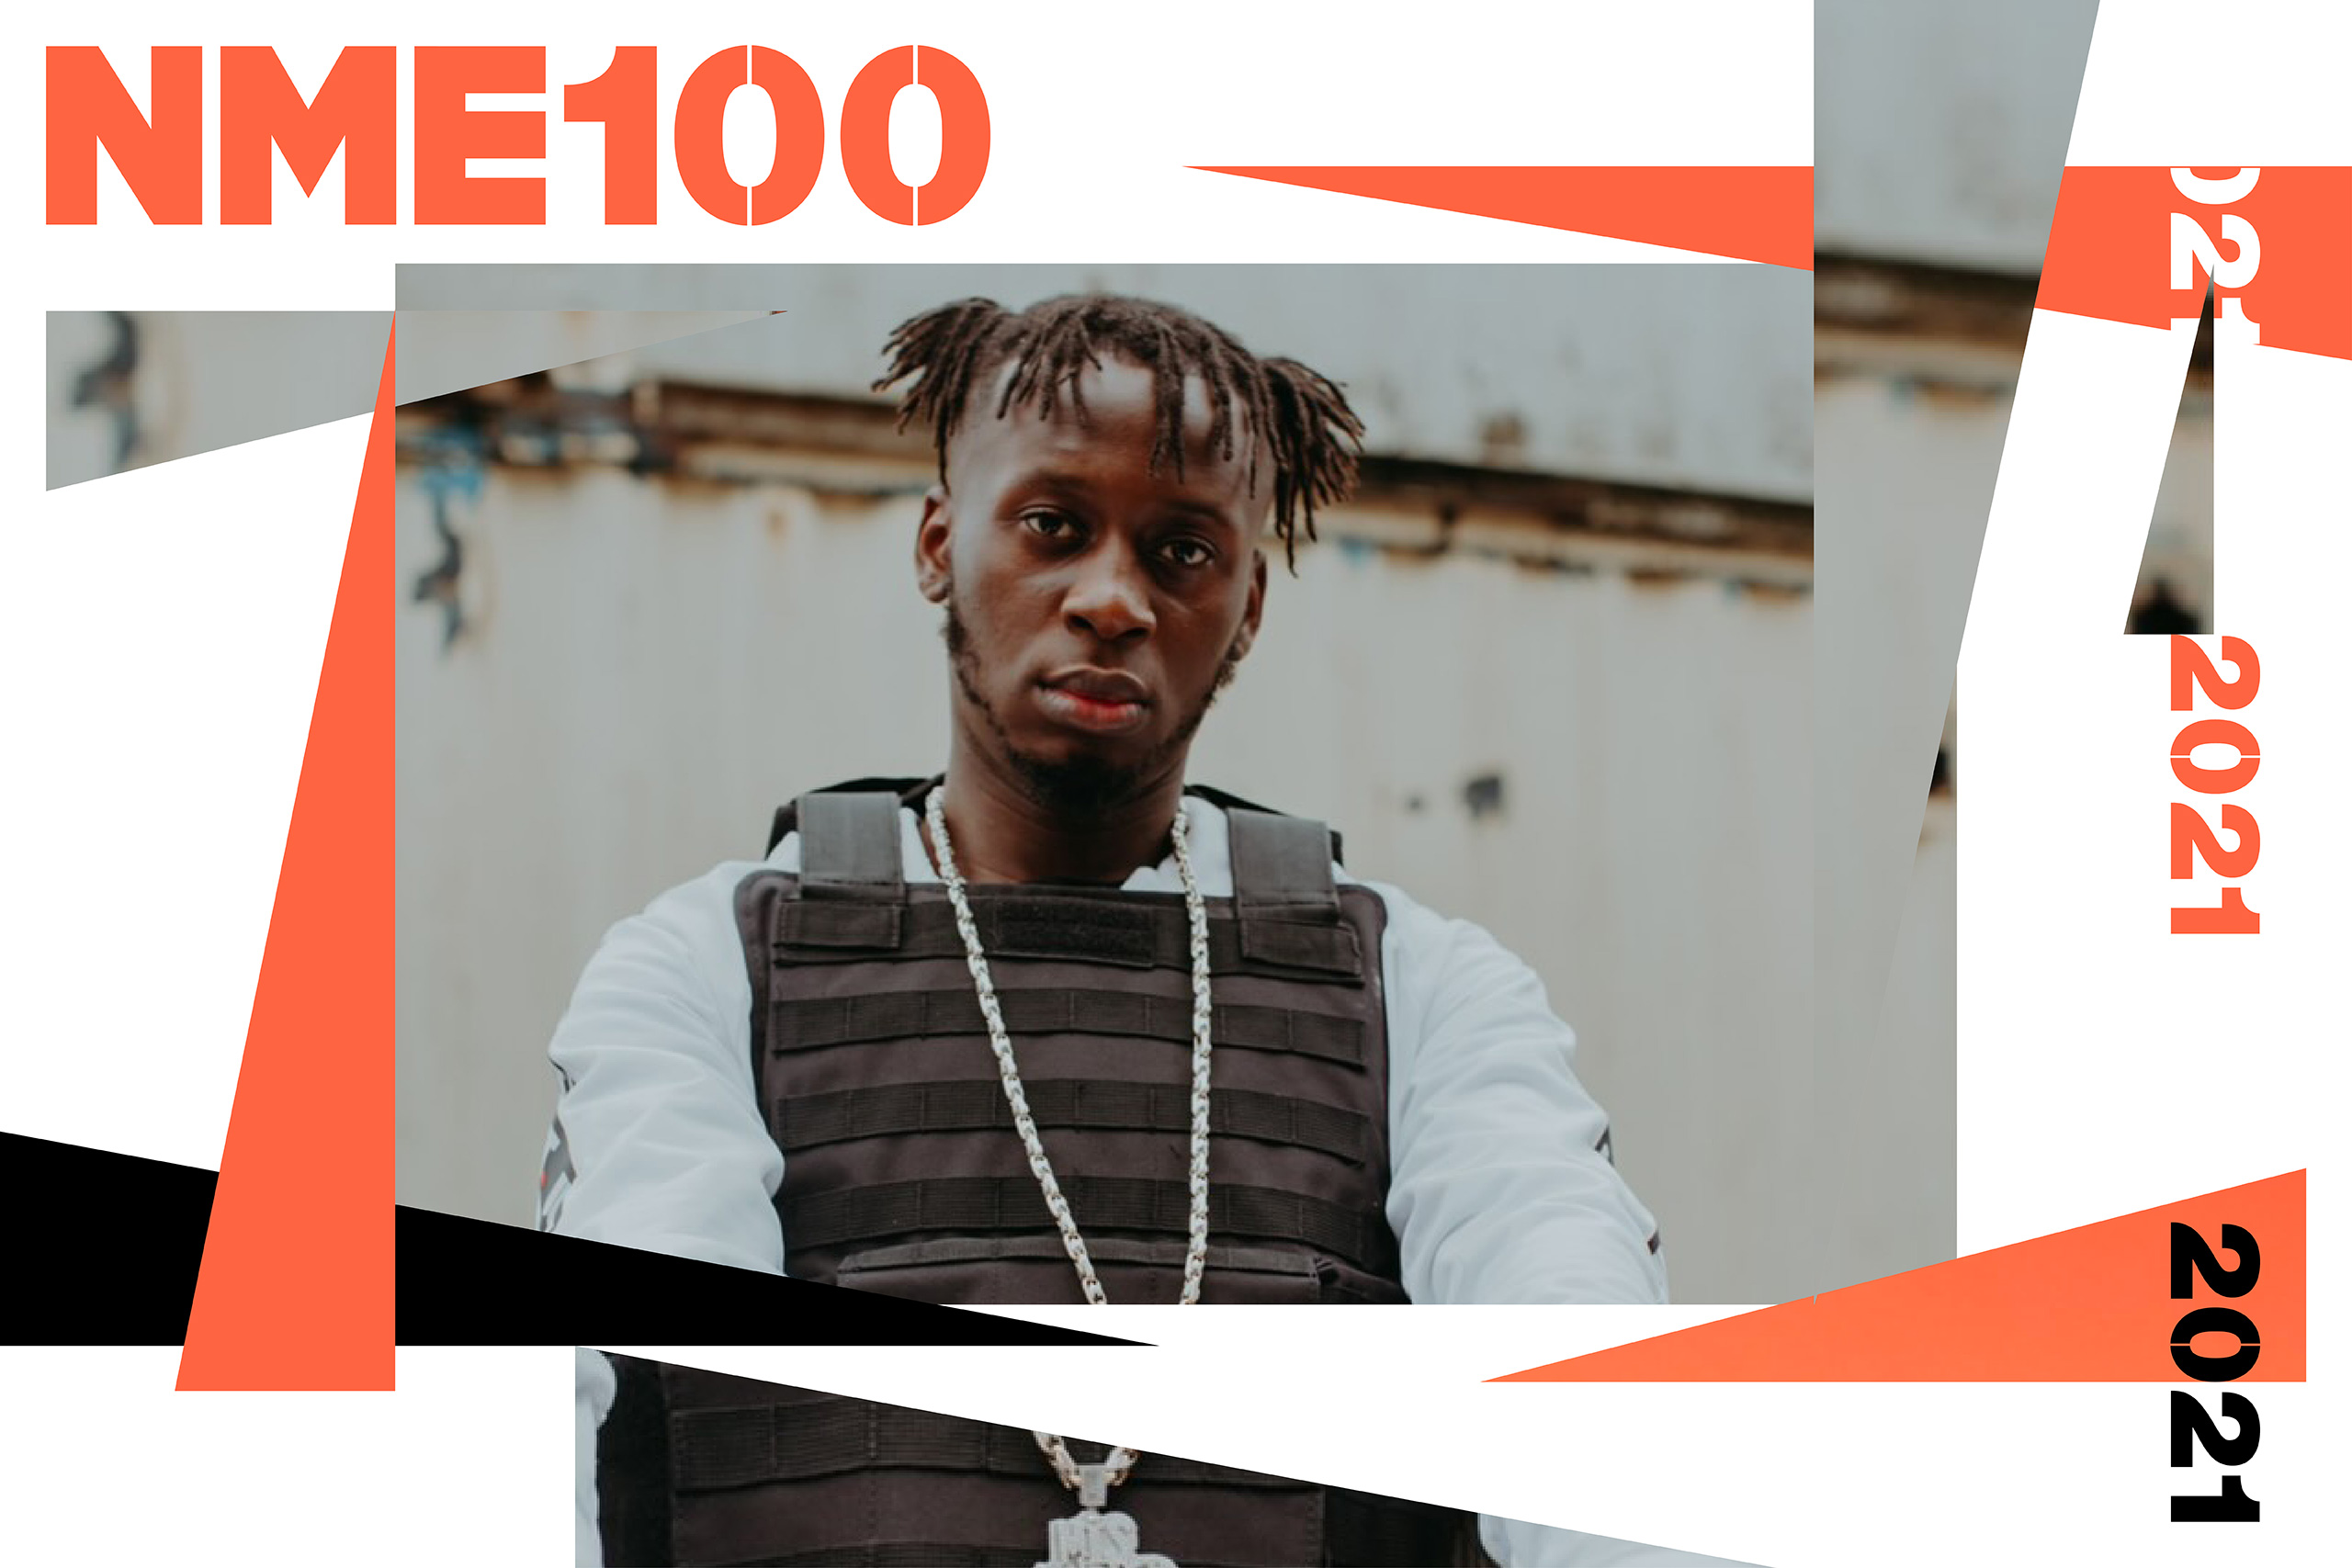 NME 100 backroad gee